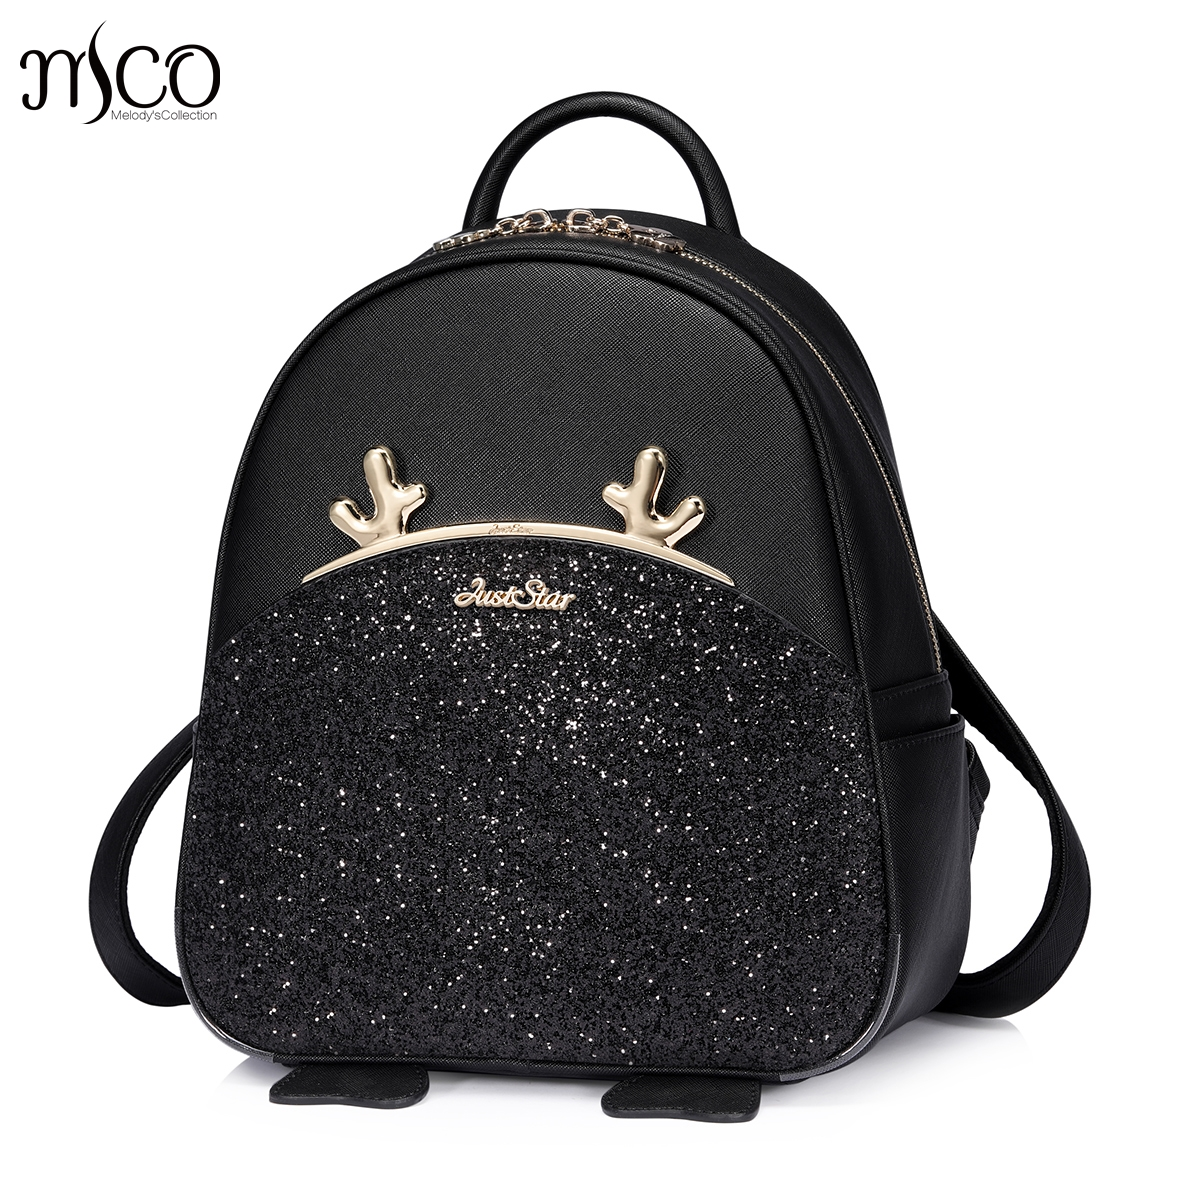 Fashion Women Backpack Big Crown Stag Embroidered Sequins Backpack Women Leather Backpacks High Quality Girls School Bags ботинки grinders stag киев